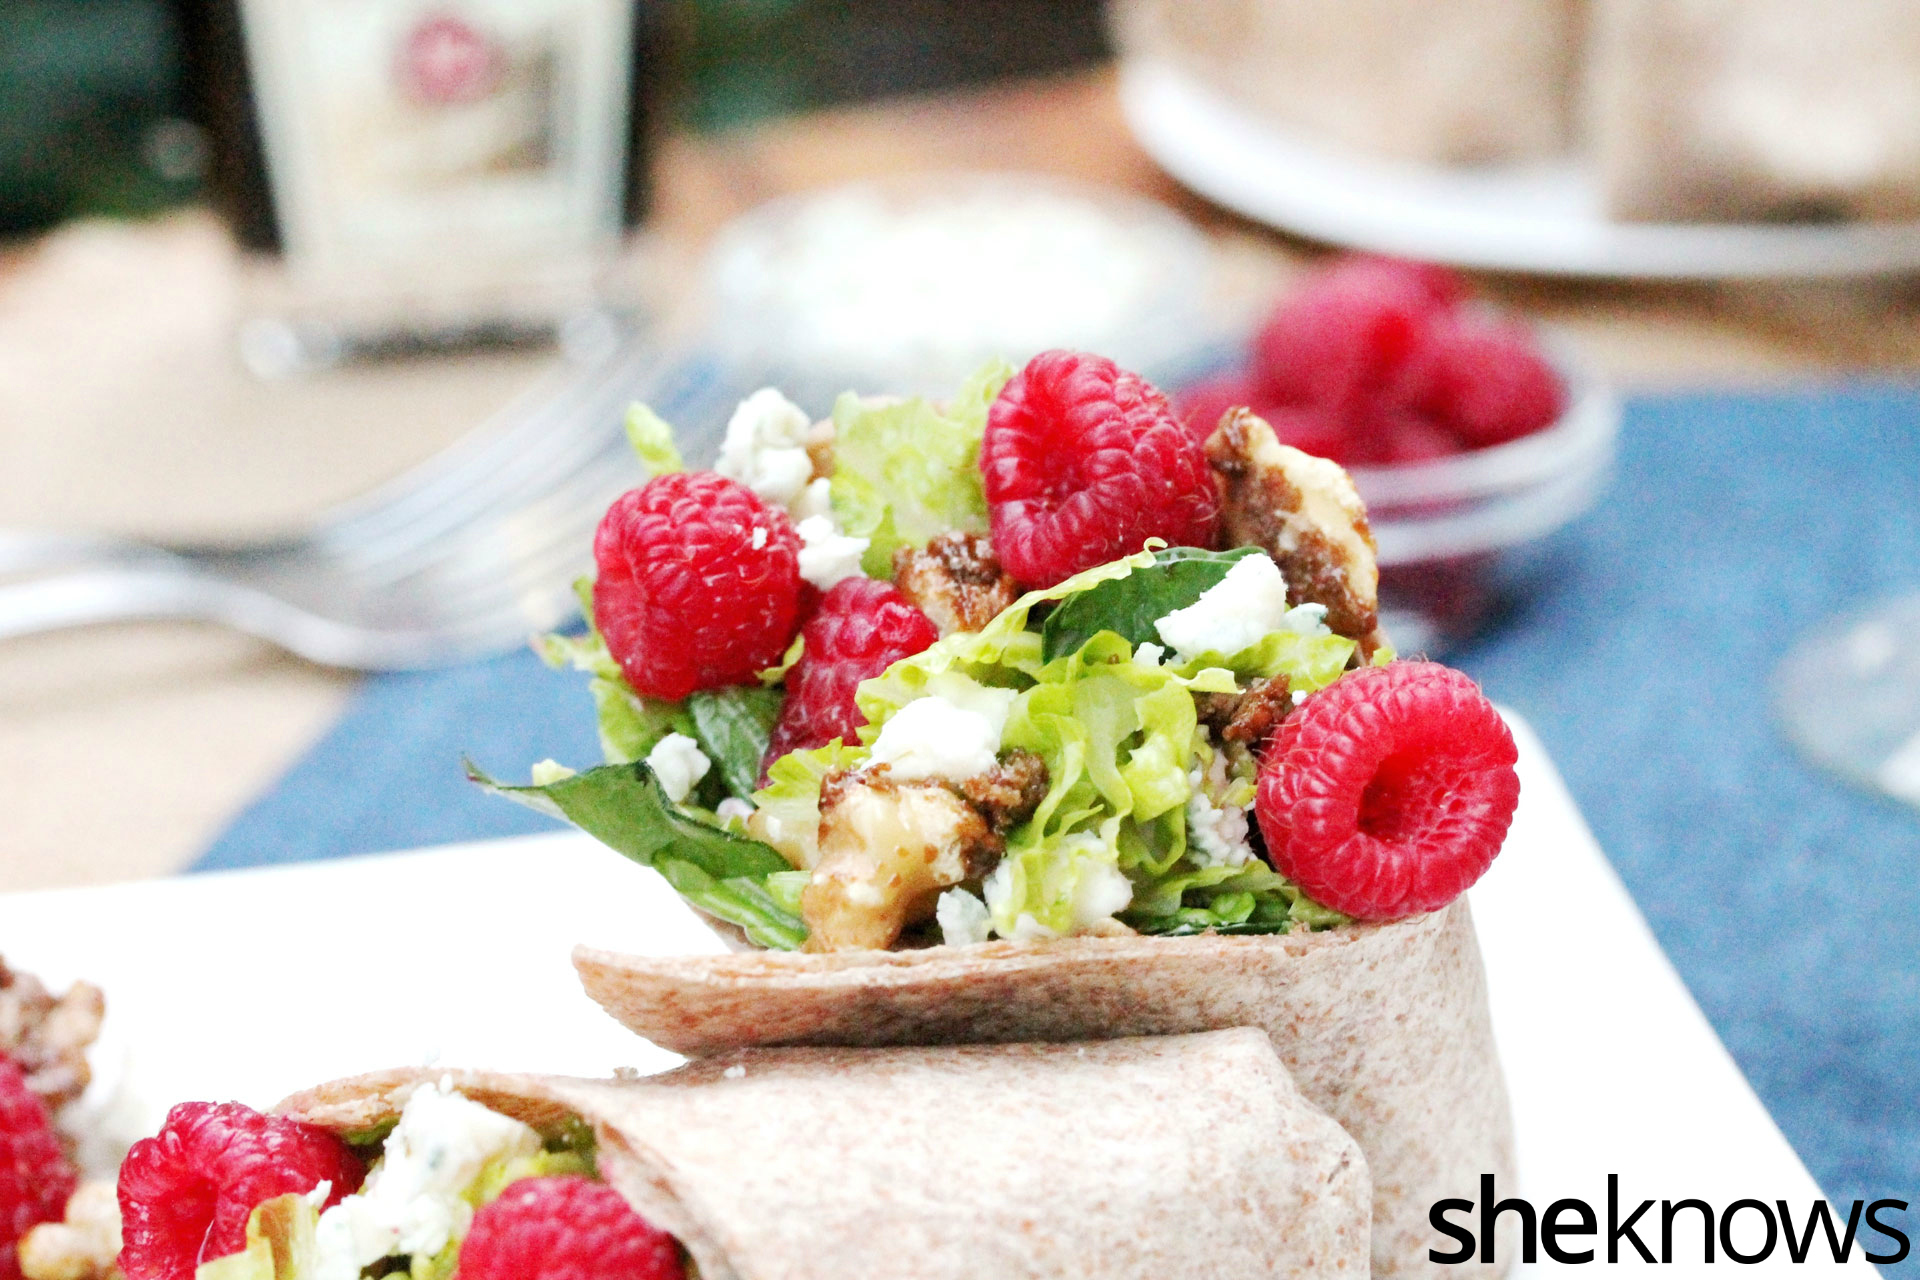 Raspberry blue cheese wrap on plate